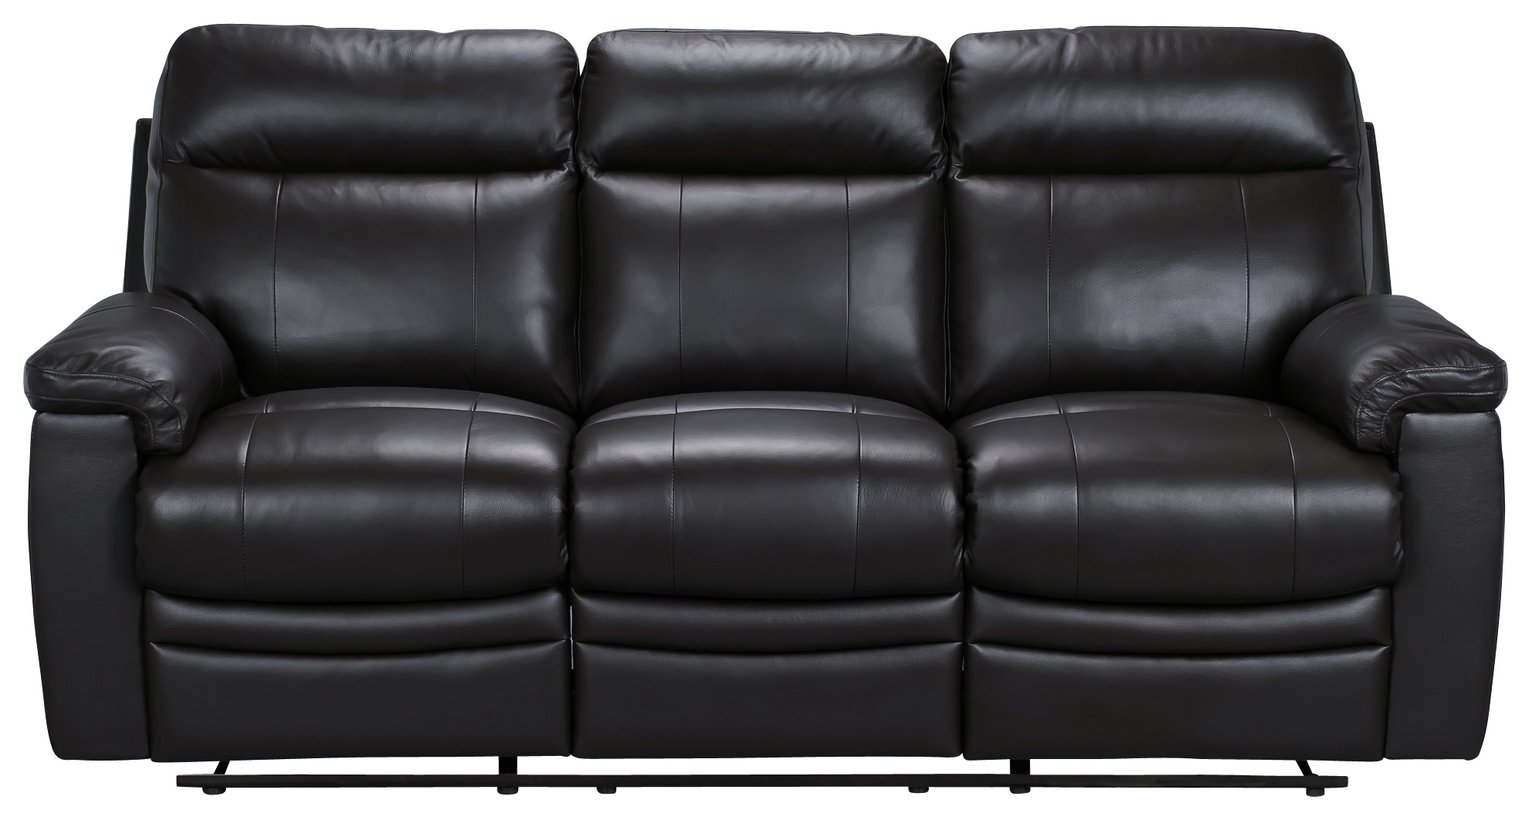 Argos Home Paolo 3 Seater Manual Recliner Sofa - Black